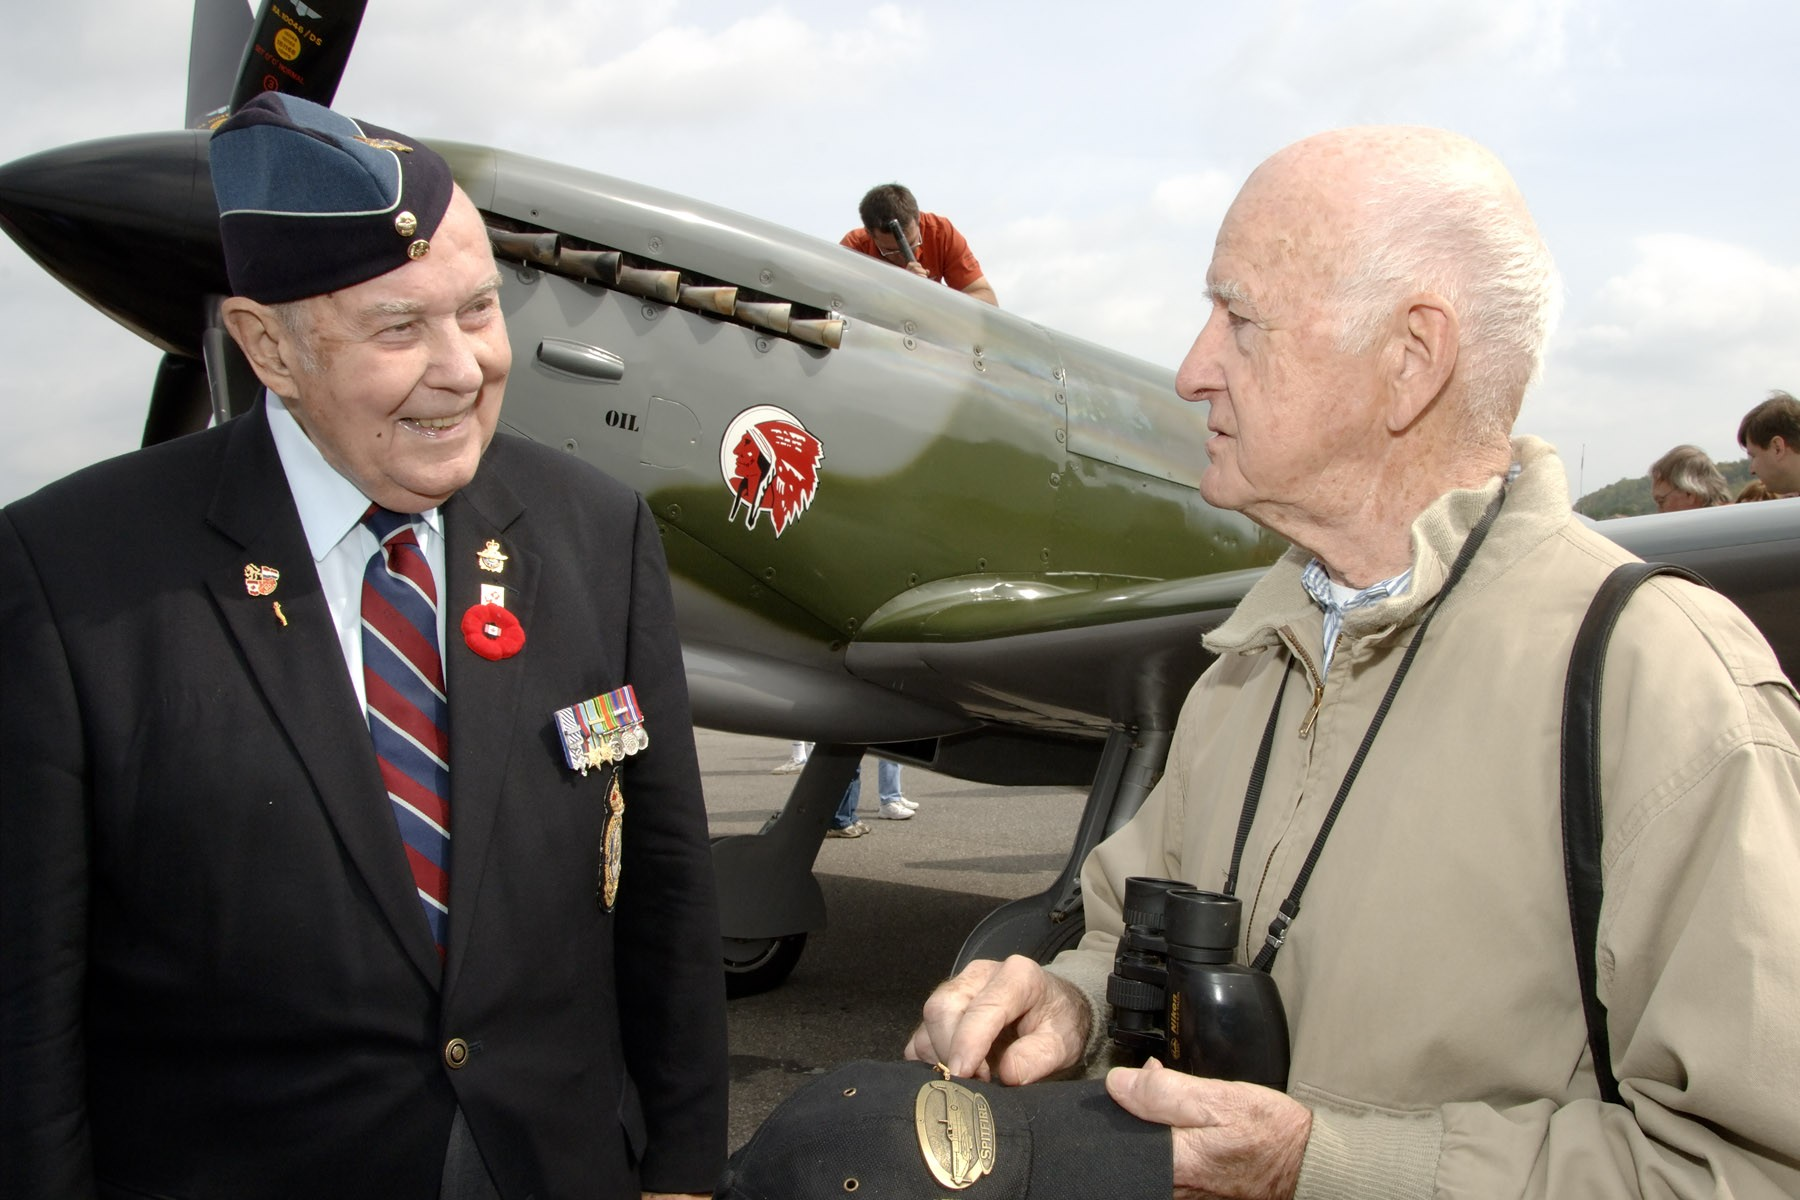 Le capitaine d'aviation à la retraite Charley Fox (à gauche), qui était colonel honoraire du 412e Escadron de transport, et M. Vernon Mullen posent devant un Spitfire semblable à ceux utilisés durant la Deuxième Guerre mondiale après la cérémonie nationale de la bataille d'Angleterre de 2006, à Ottawa. Le colonel honoraire Fox est décédé en octobre 2008. PHOTO : Adjudant Serge Peters